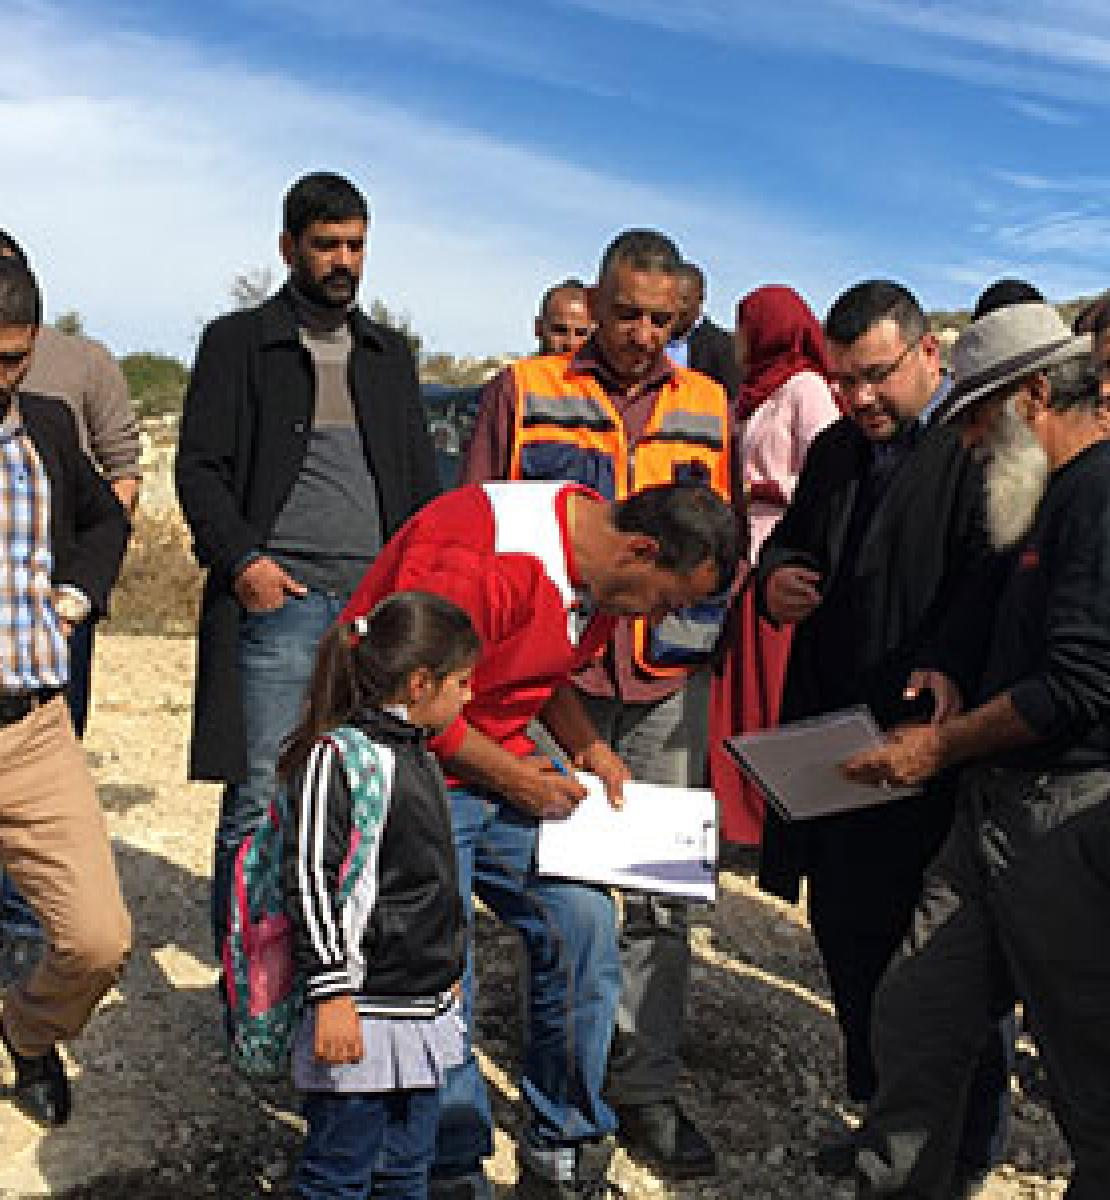 Powering up data collection systems in Palestine